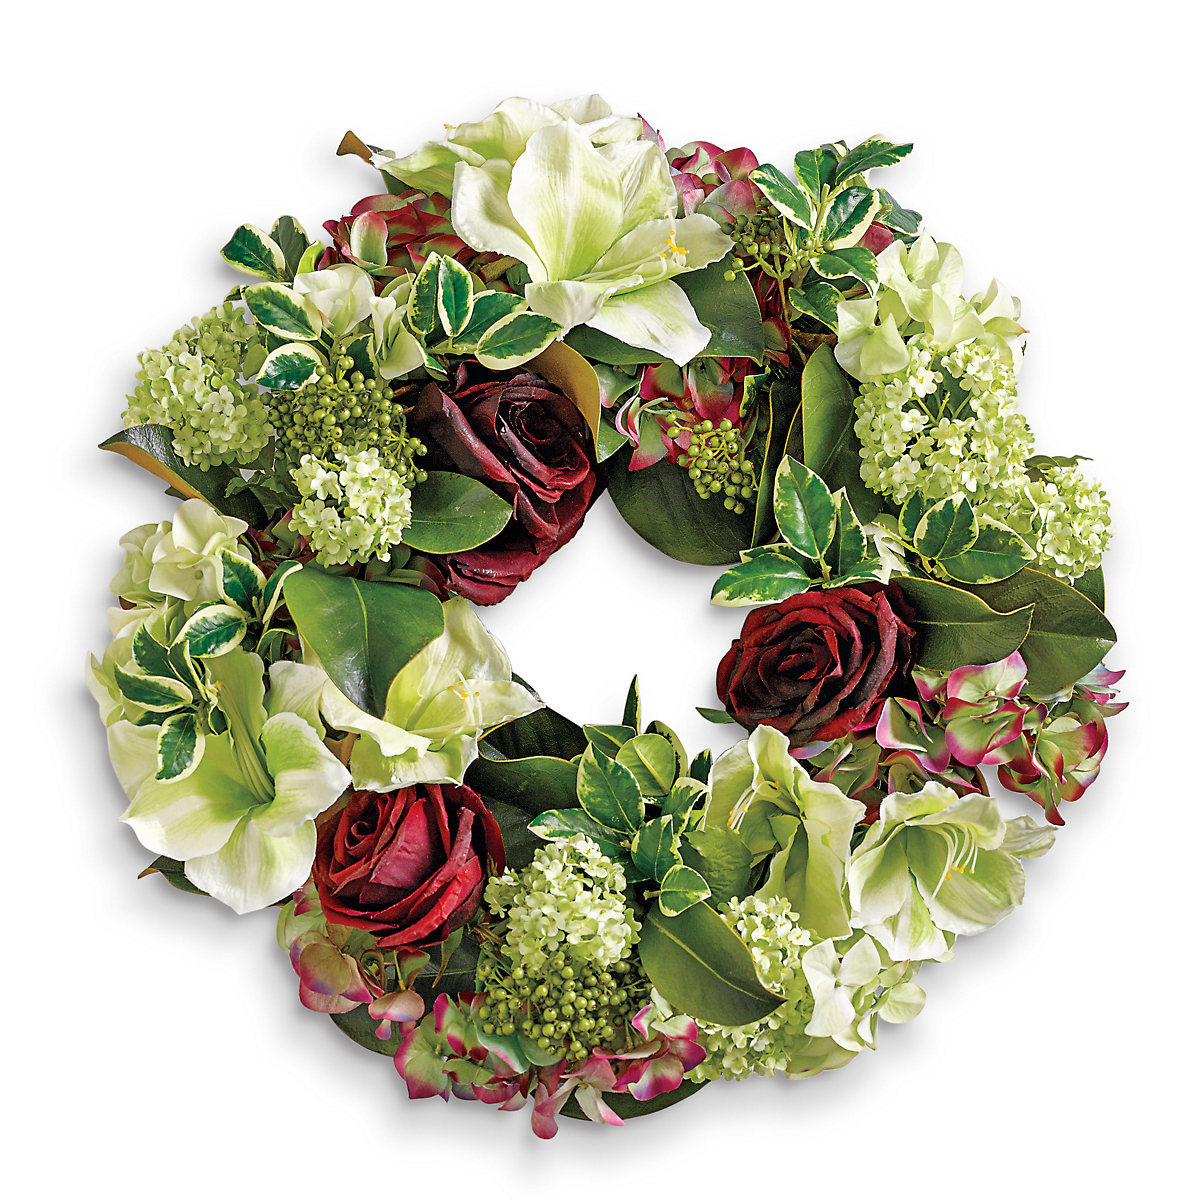 Kensington Garden Wreath